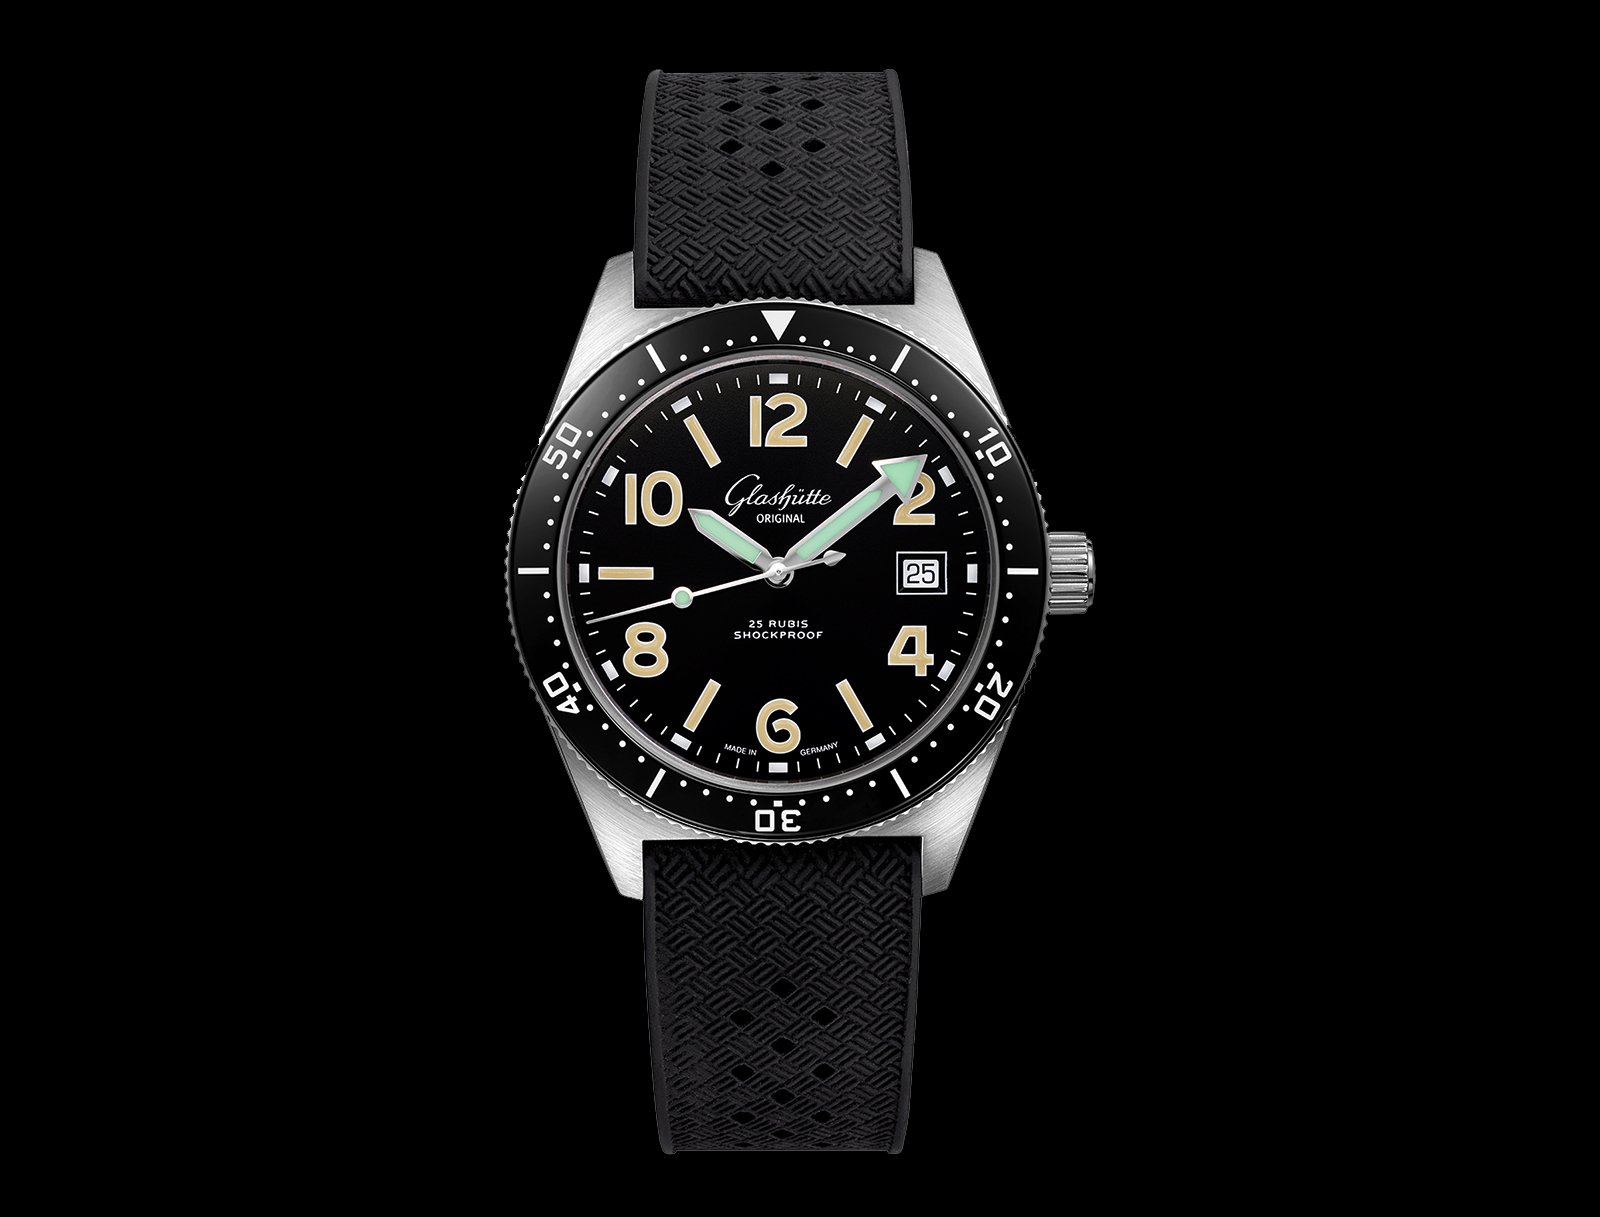 The Spezialist SeaQ 1969, limited to just 69 pieces